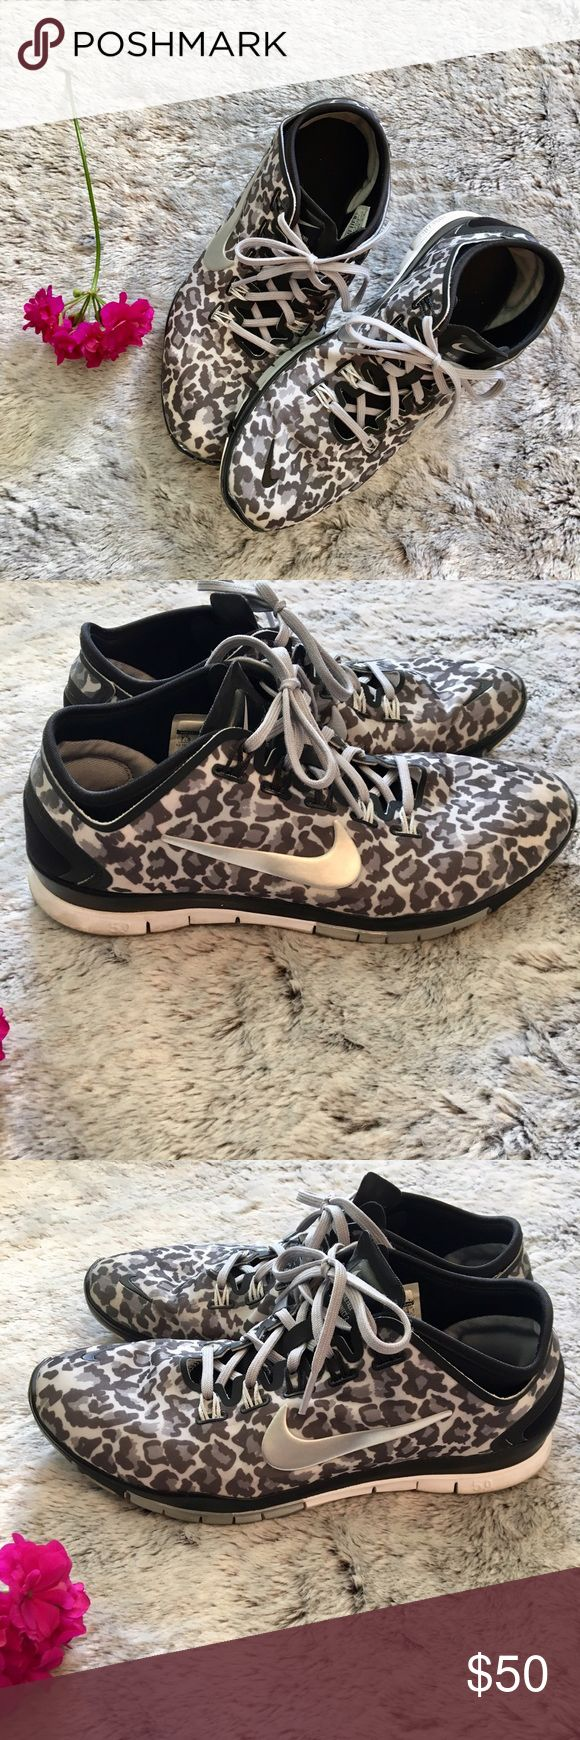 Nike Free 5.0 Run in style! Gently used Nike leopard print free runs. No tears, just a little dirty & discolored on front (shown in picture). Very comfortable. Nike Shoes Sneakers